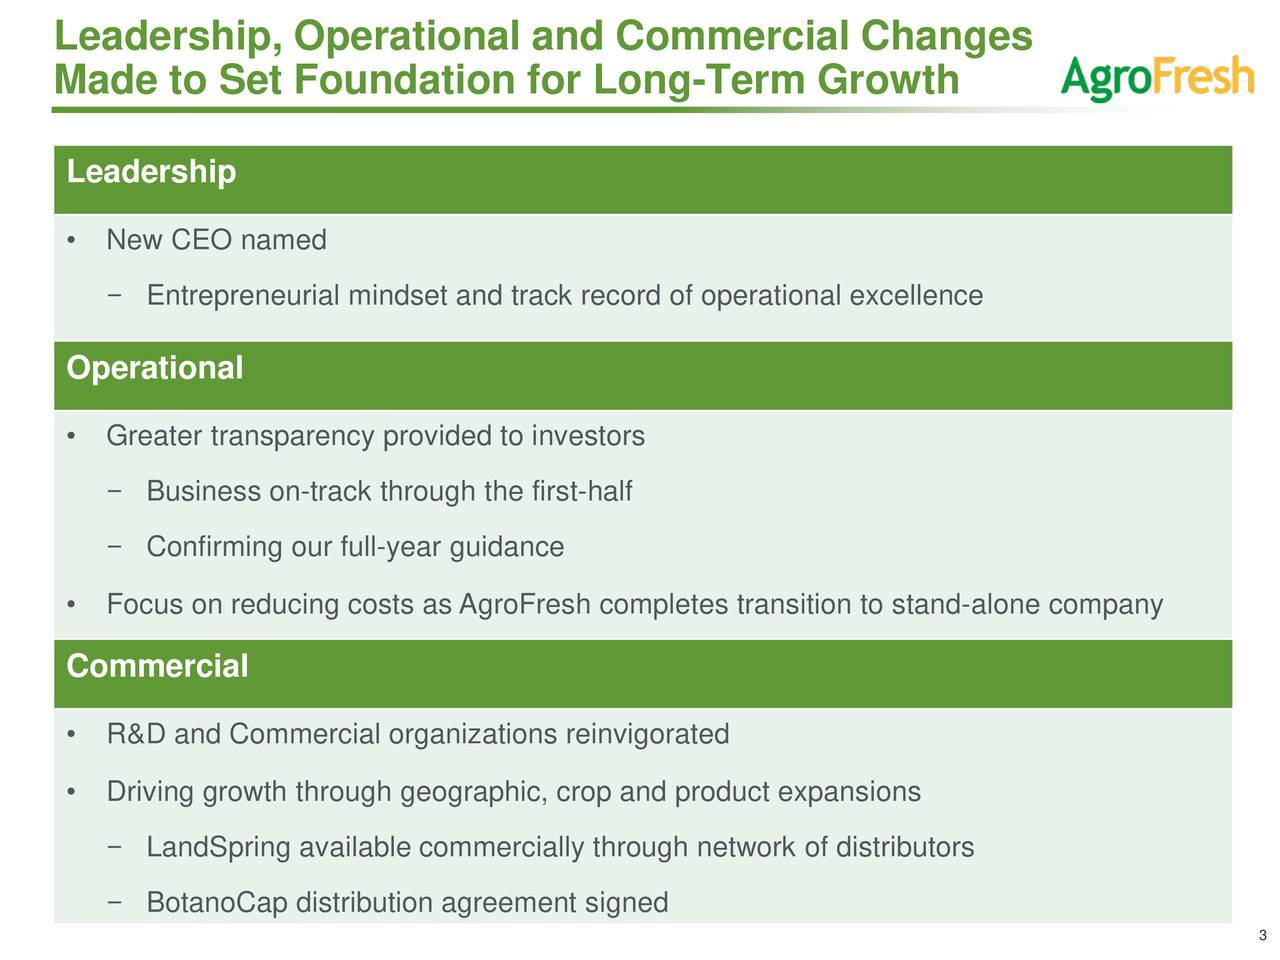 Made to Set Foundation for Long-Term Growth Leadership New CEO named Entrepreneurial mindset and track record of operational excellence Operational Greater transparency provided to investors Business on-track through the first-half Confirming our full-year guidance Focus on reducing costs as AgroFresh completes transition to stand-alone company Commercial R&D and Commercial organizations reinvigorated Driving growth through geographic, crop and product expansions LandSpring available commercially through network of distributors BotanoCap distribution agreement signed 3